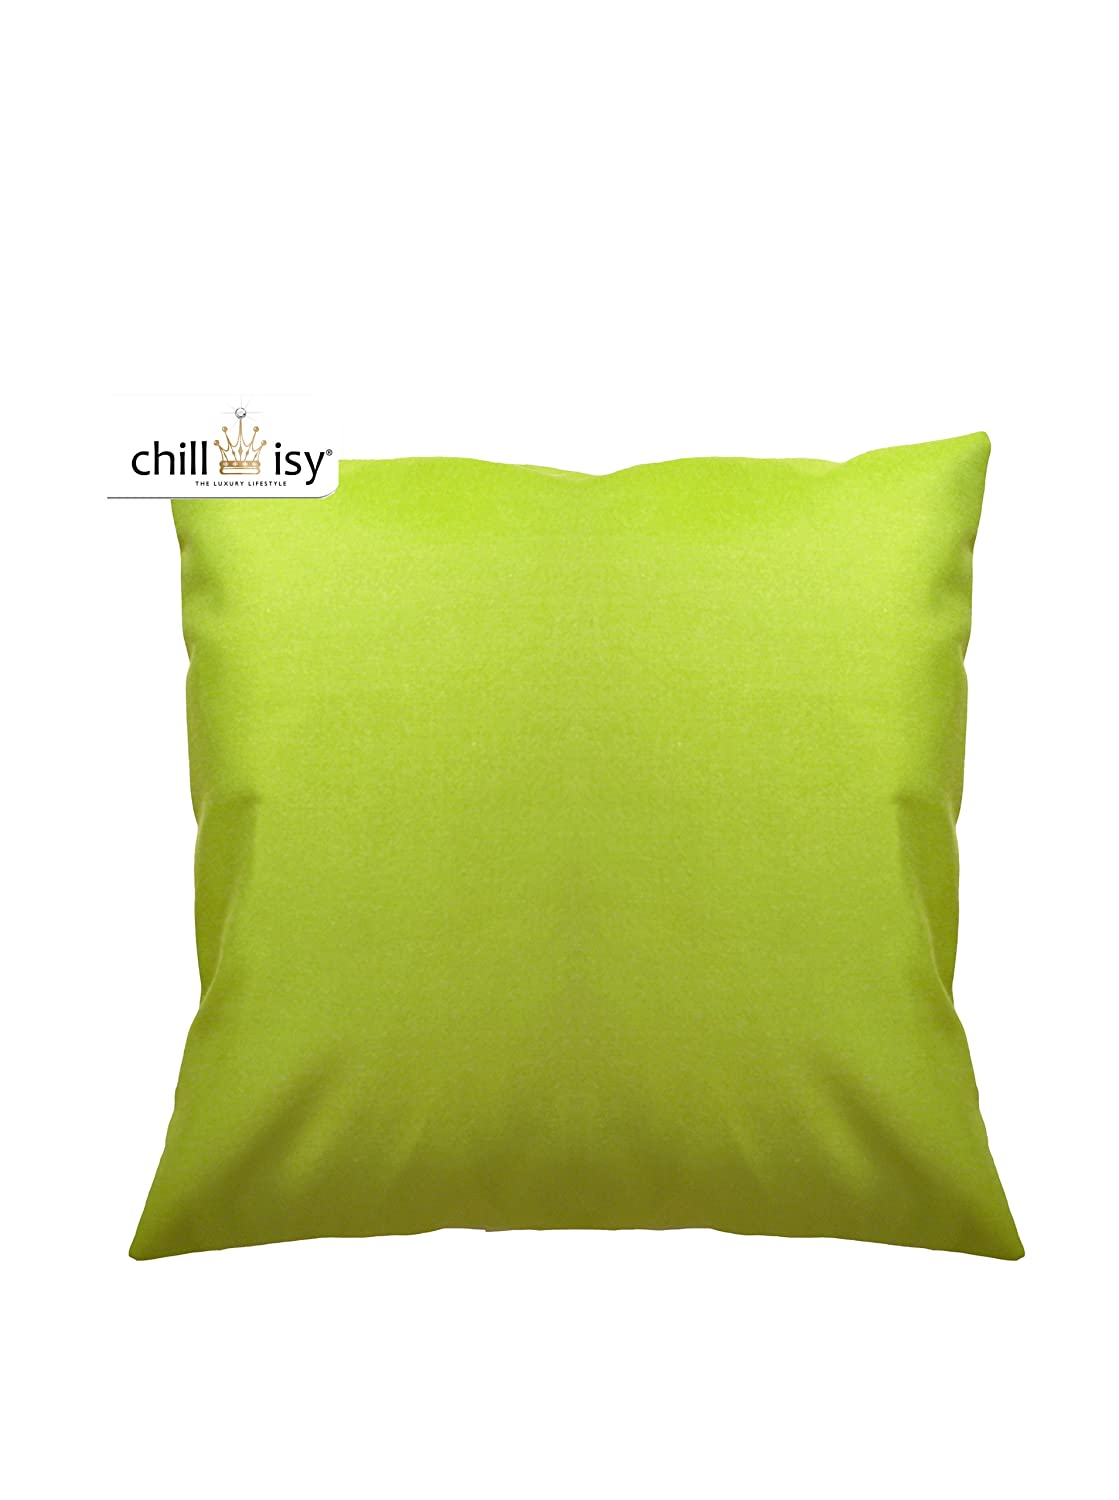 chillisy® SUMMERTIME Outdoor Kissen grün / lime, 60x60, farbecht